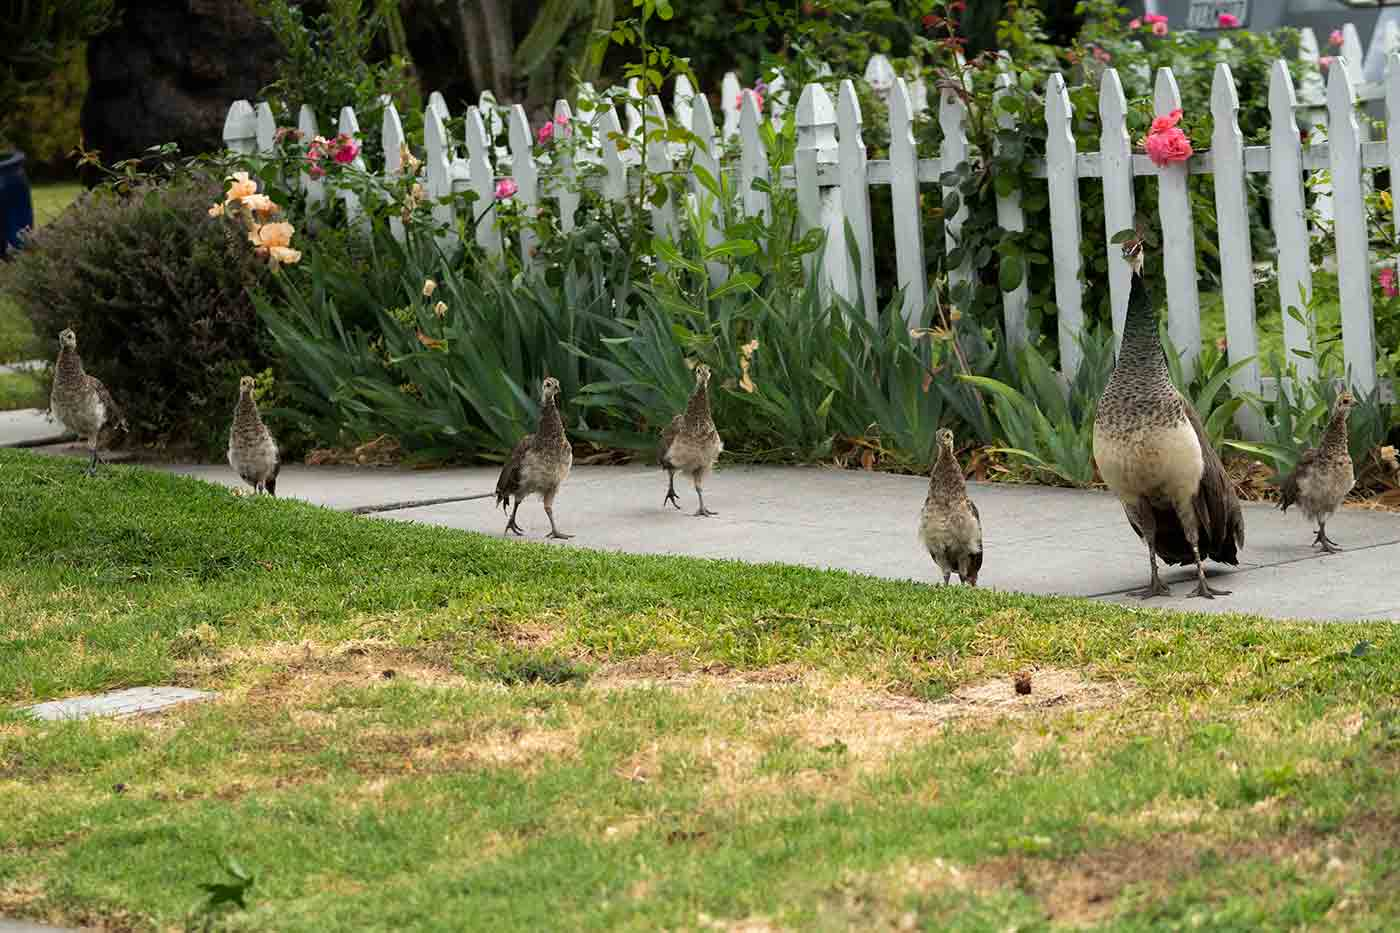 peahen with chicks on a sidewalk in Southern California uses animal smarts to collaborate with other birds to protect her young